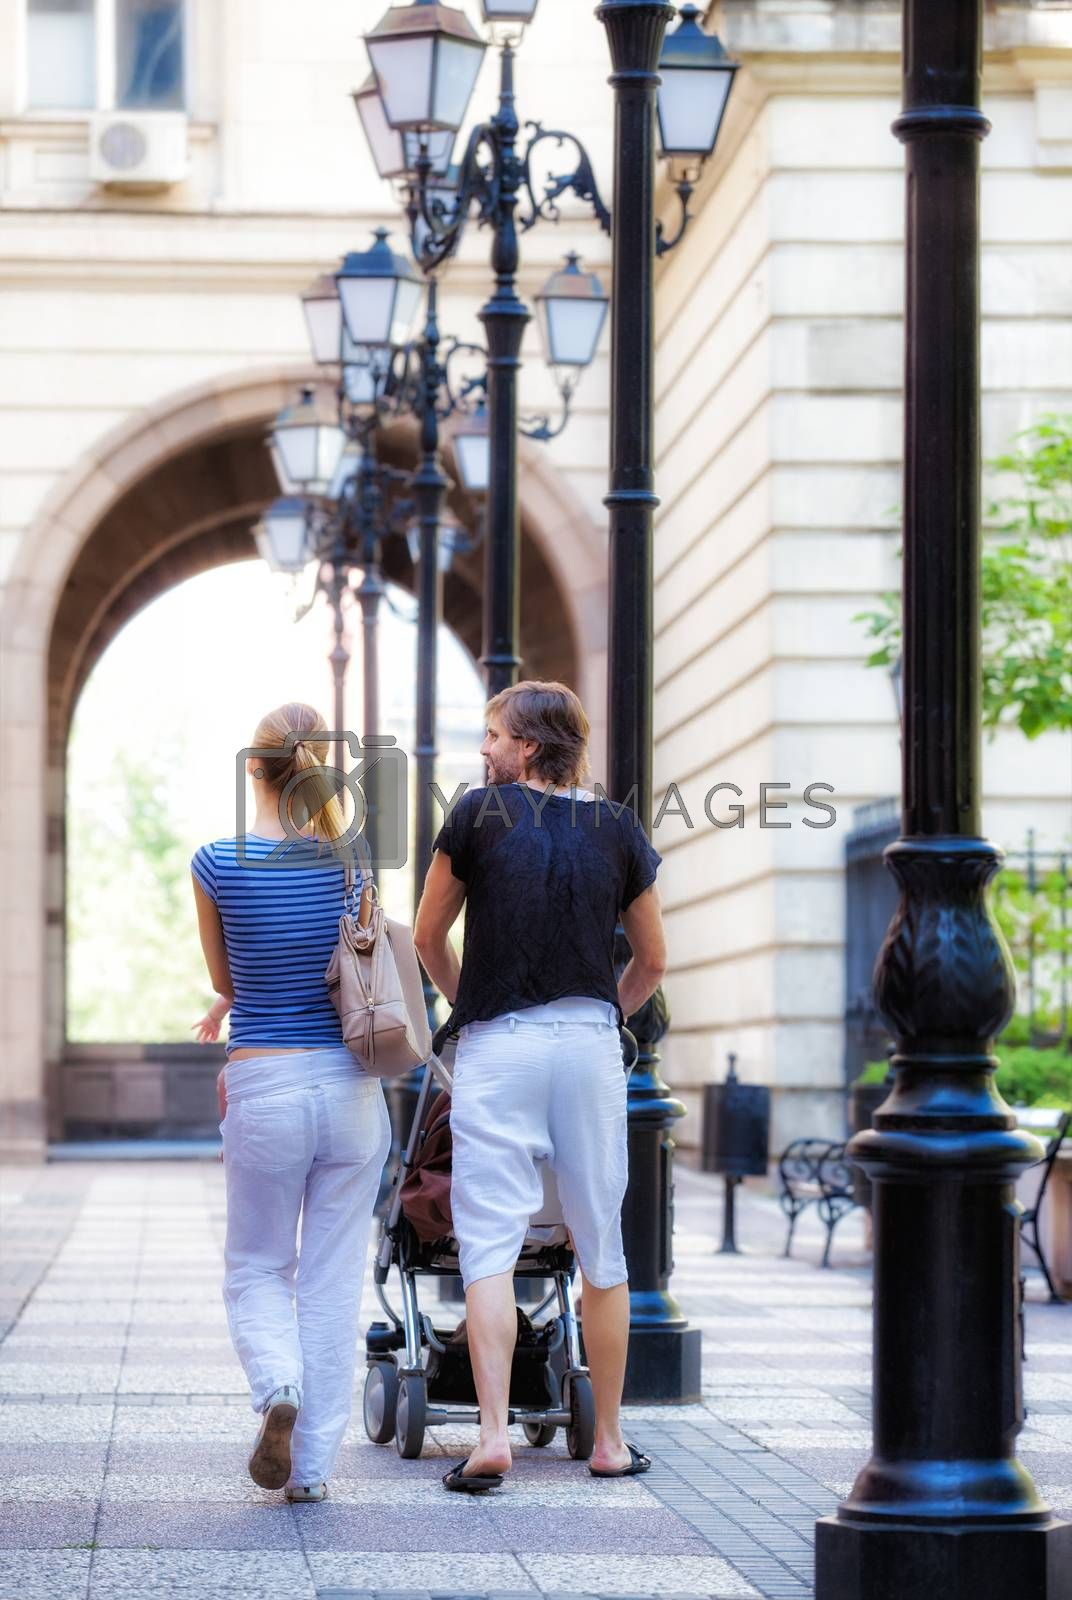 A view of a young couple with a baby walking away downtown in a sunny summer or spring day.